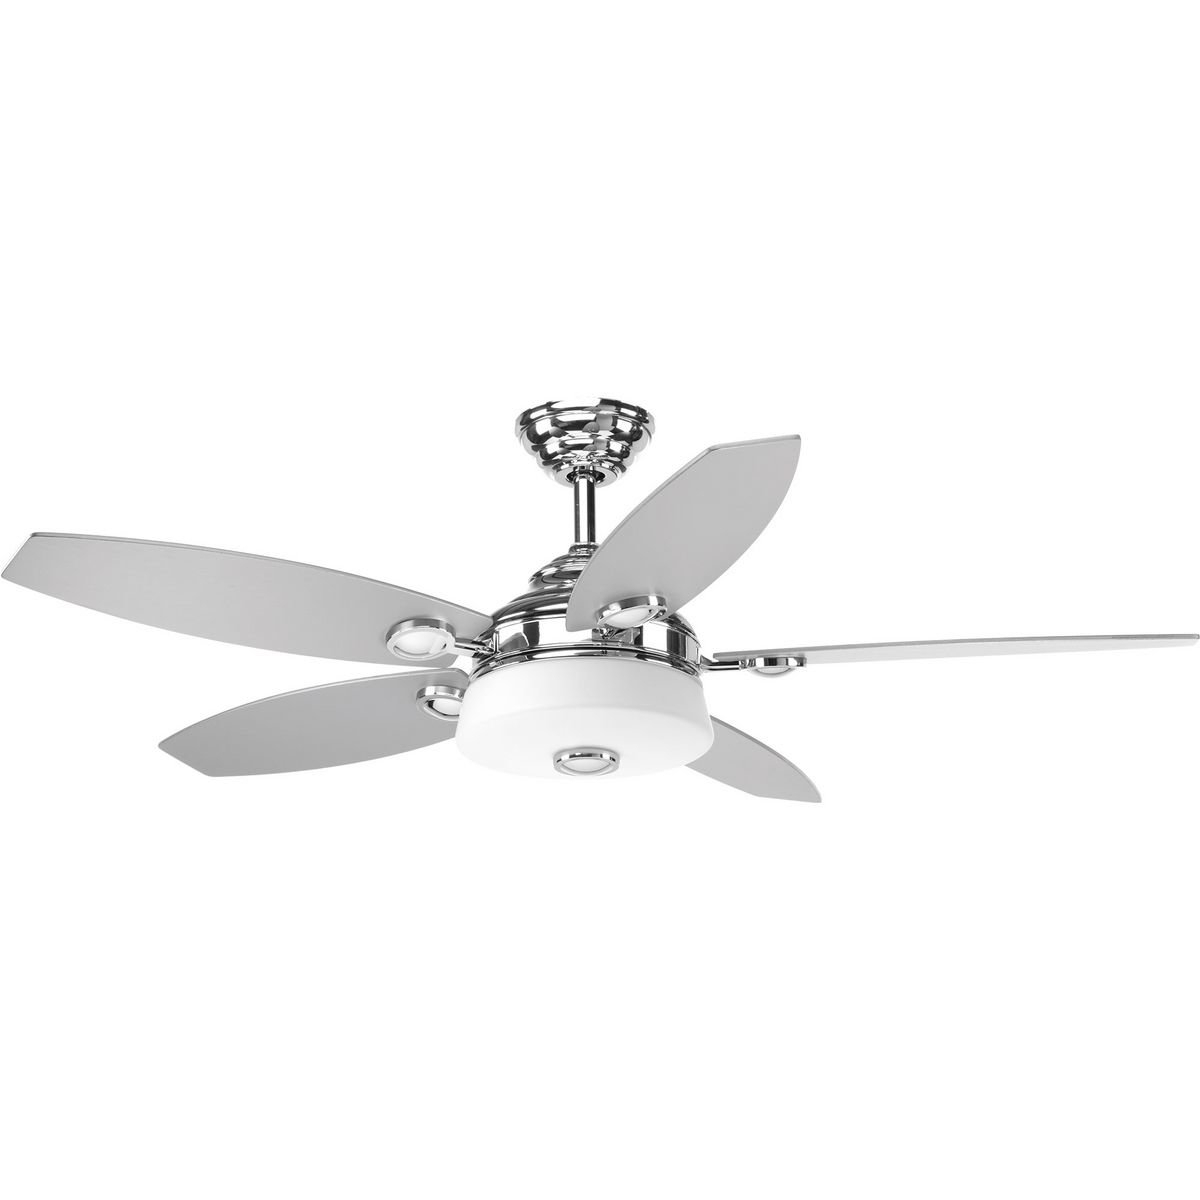 "Most Recent 54"" Keriann 5 Blade Led Ceiling Fan With Remote, Light Kit Included Inside Stewardson 4 Blade Ceiling Fans (View 16 of 20)"